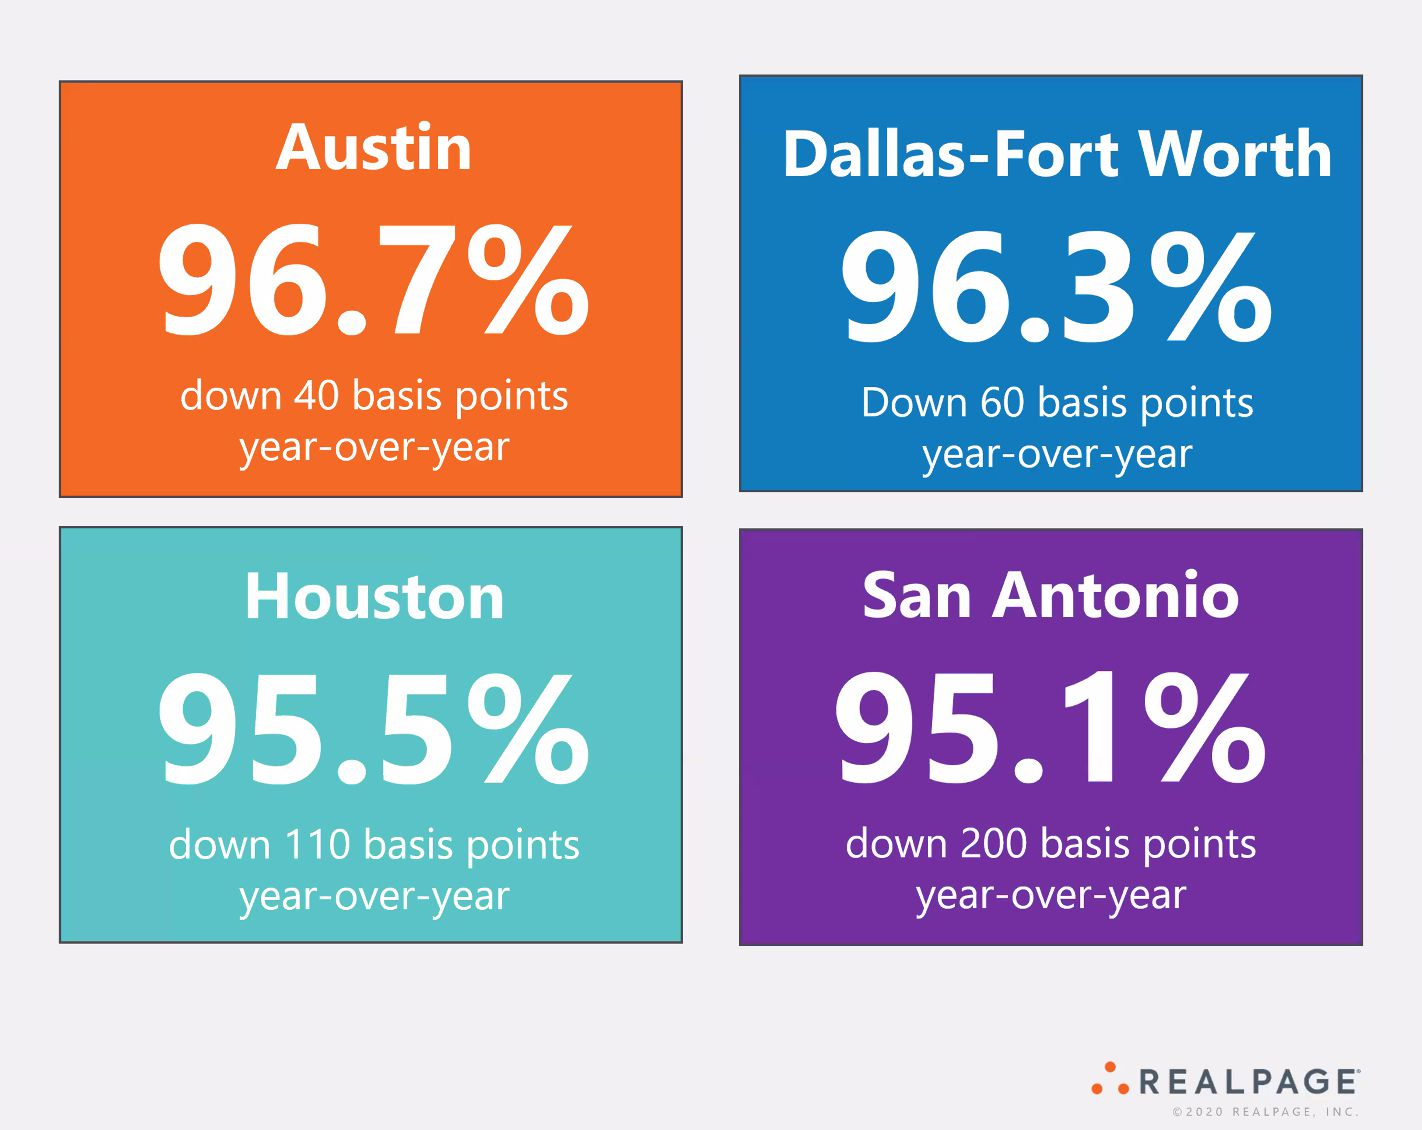 Dallas-Fort Worth apartment occupancies are down only slightly from last year.